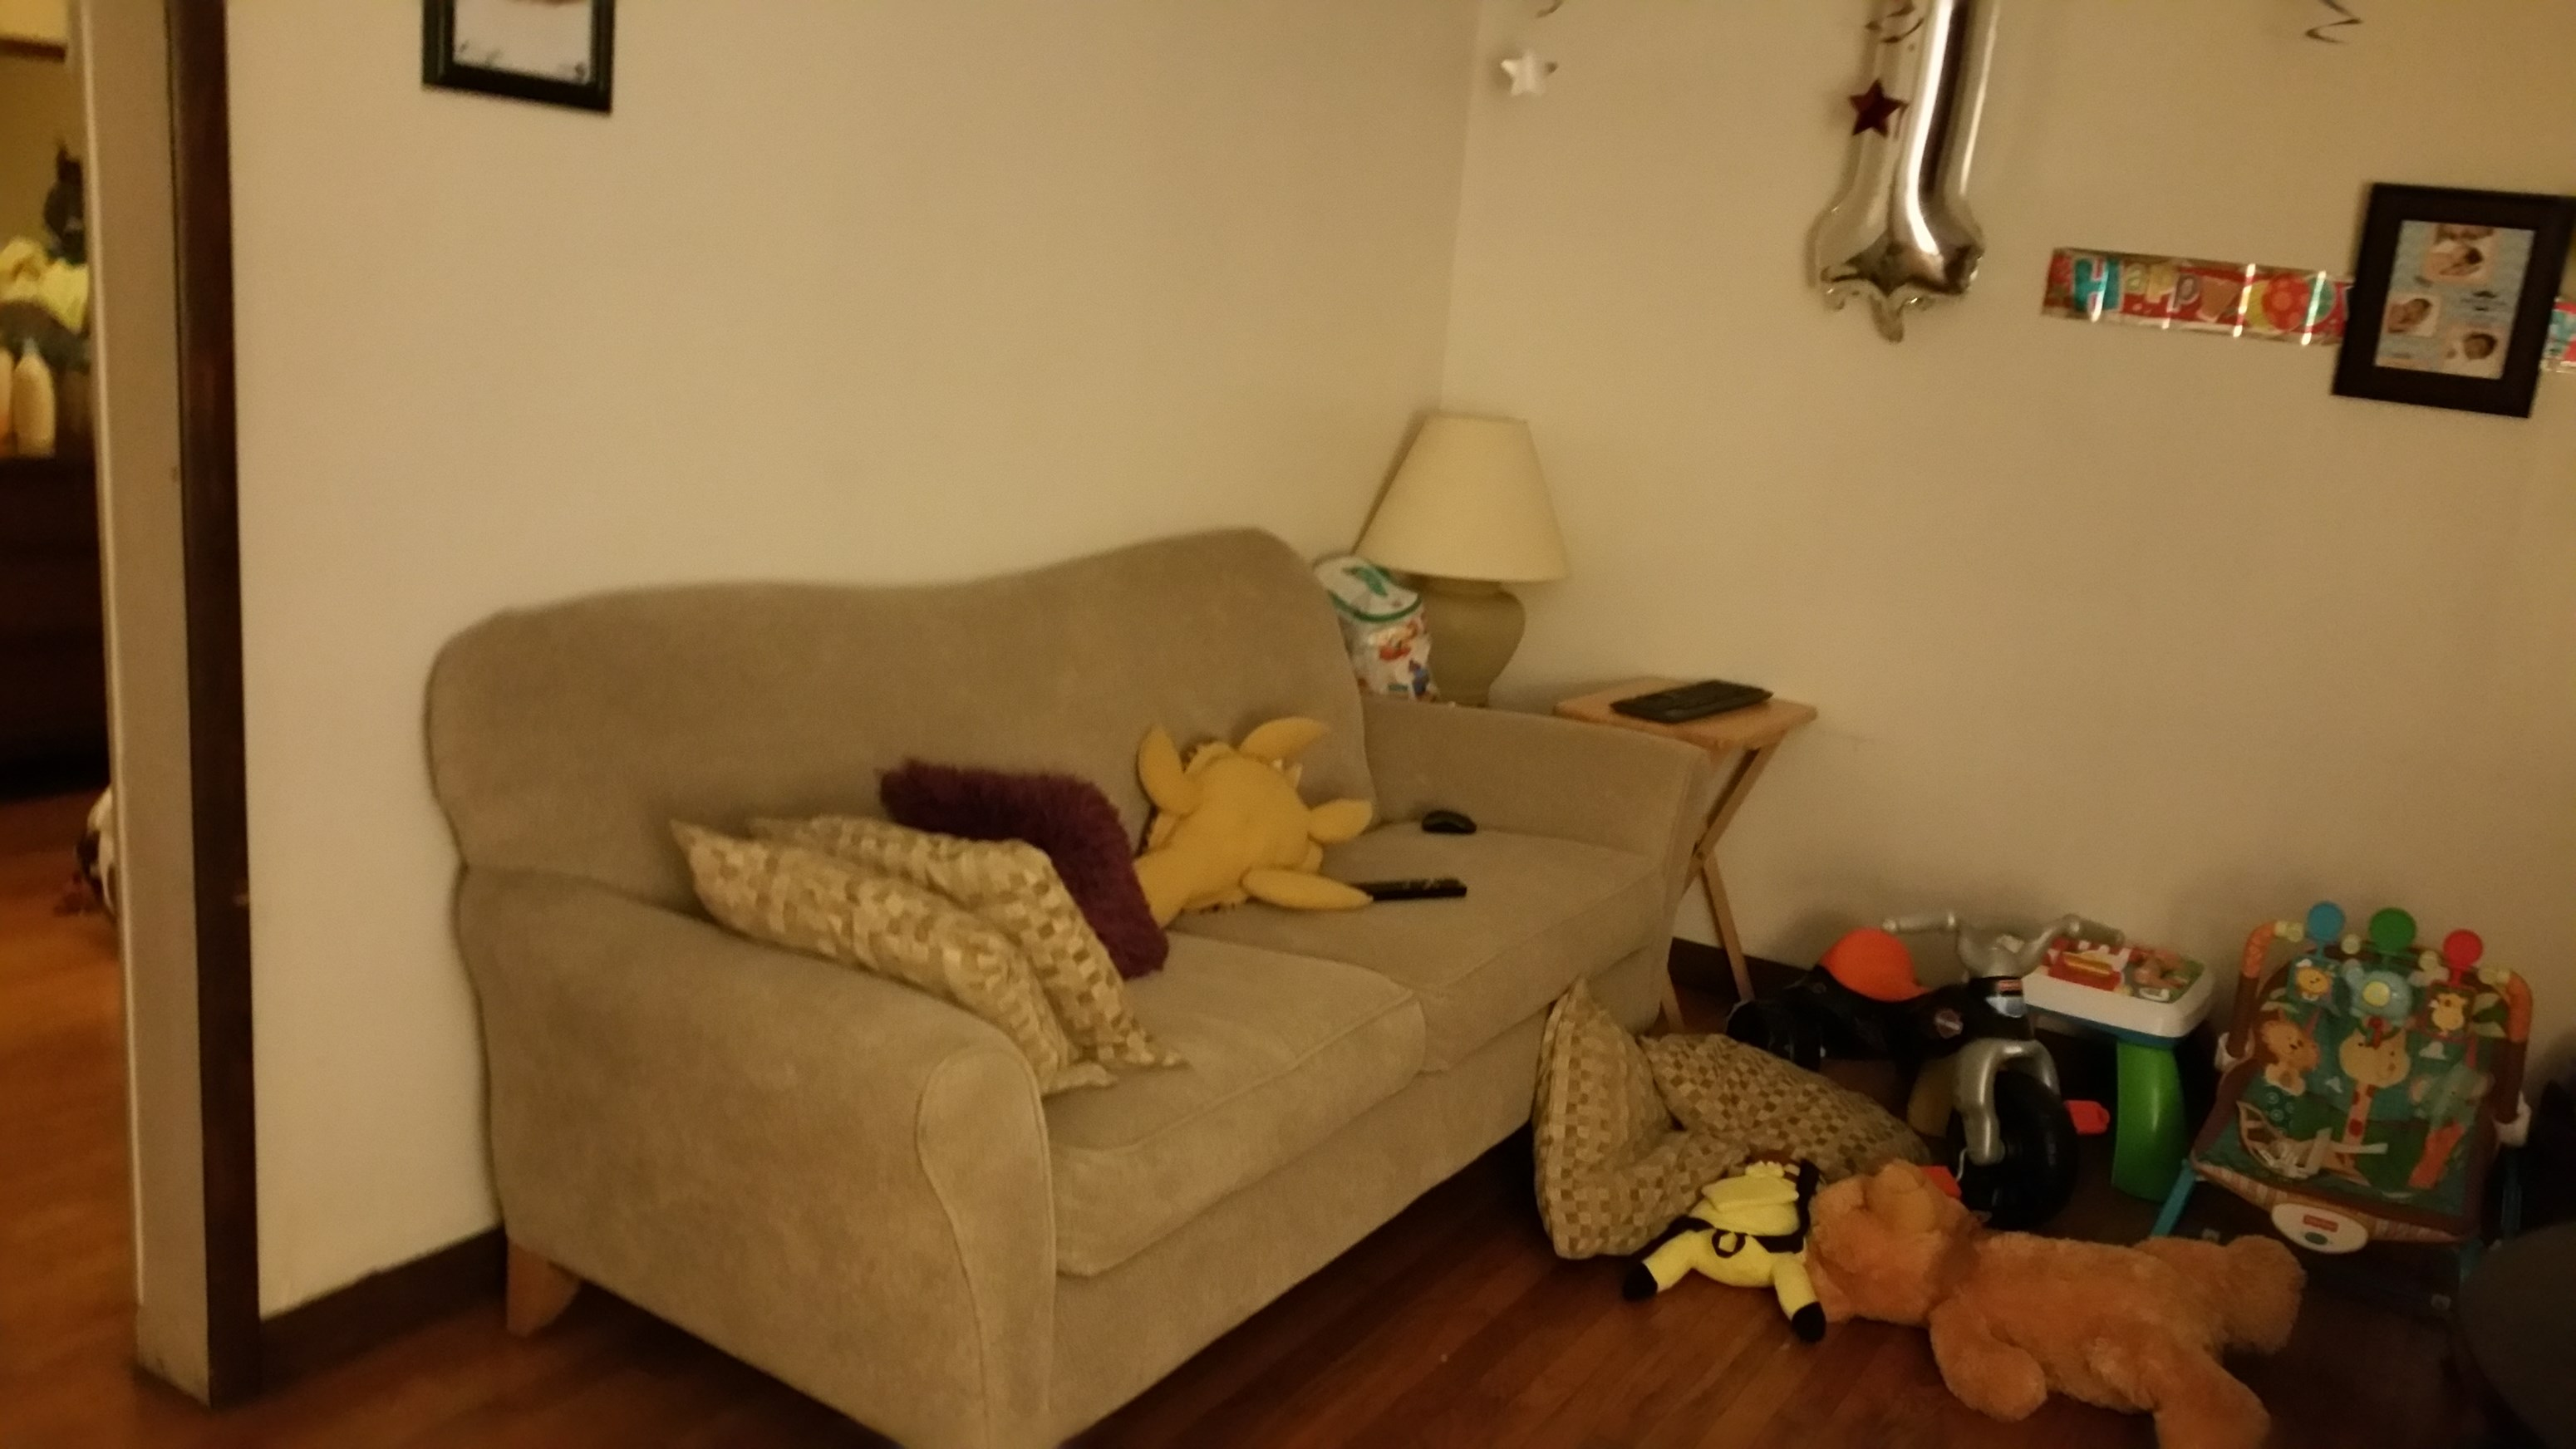 Two Bedroom Apartment In Jersey City Heights. Rooms for Rent in New Jersey   Apartments  Flats  Commercial Space